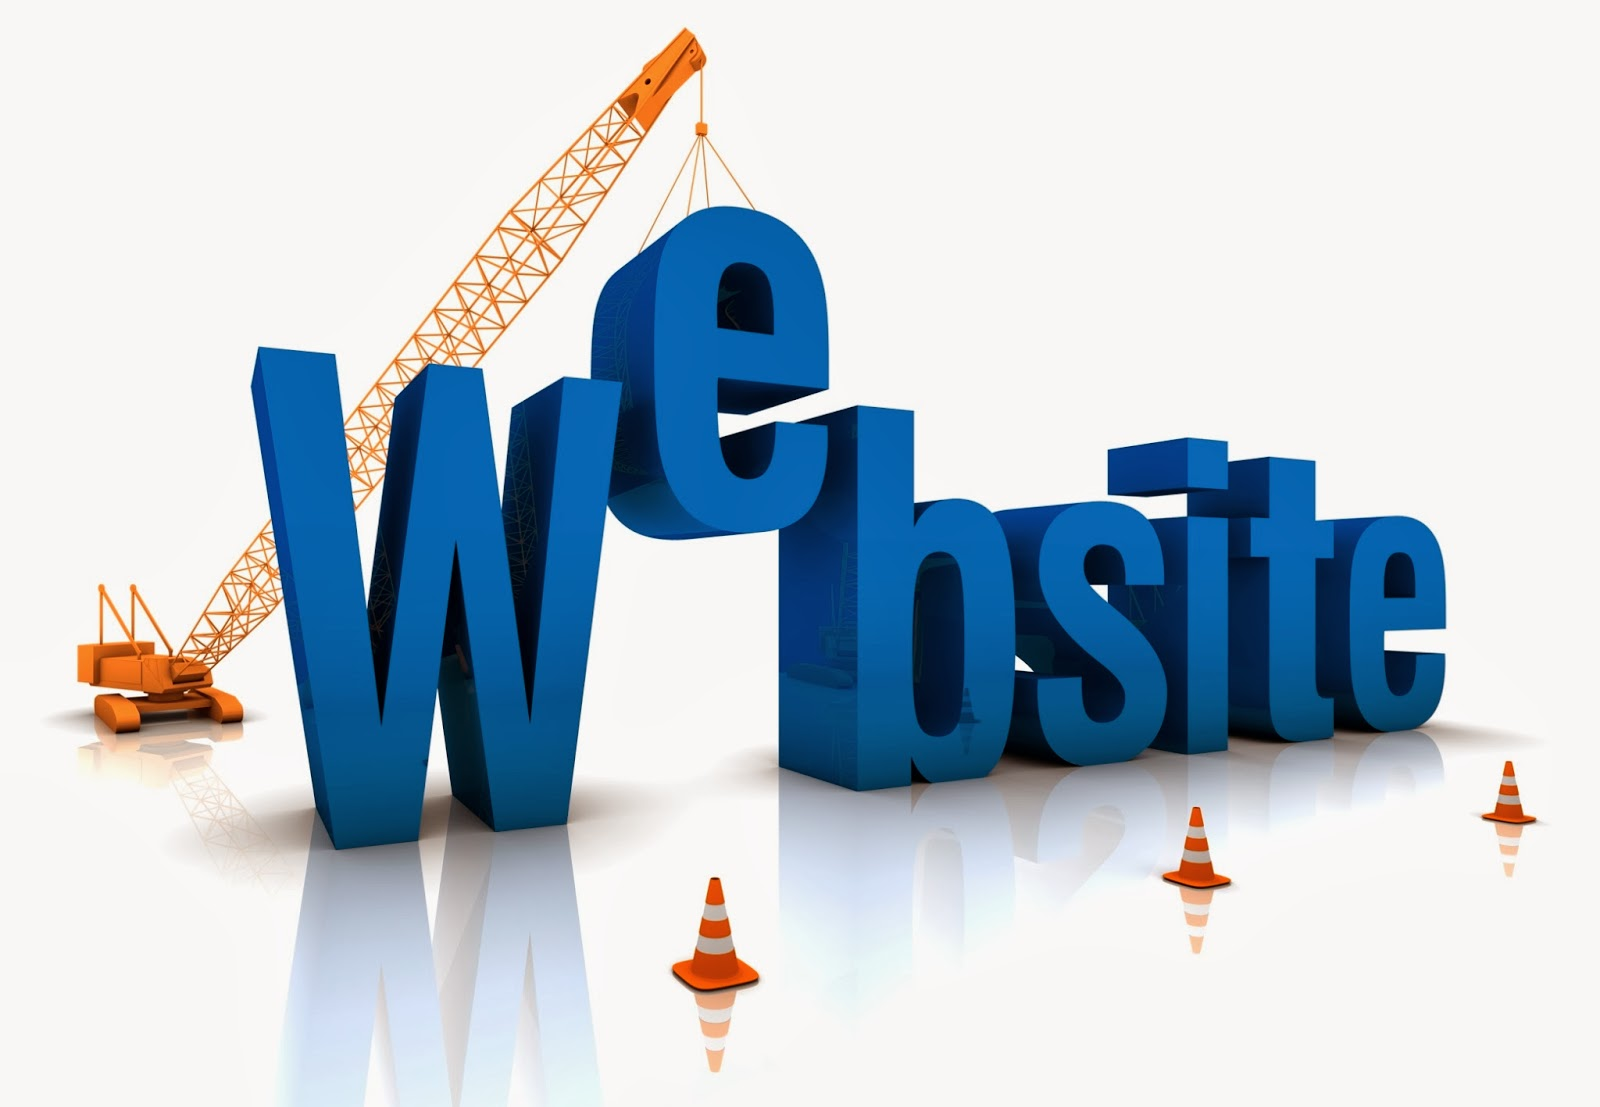 HOW TO CREATE A WEBSITE WITH FREE OF COST